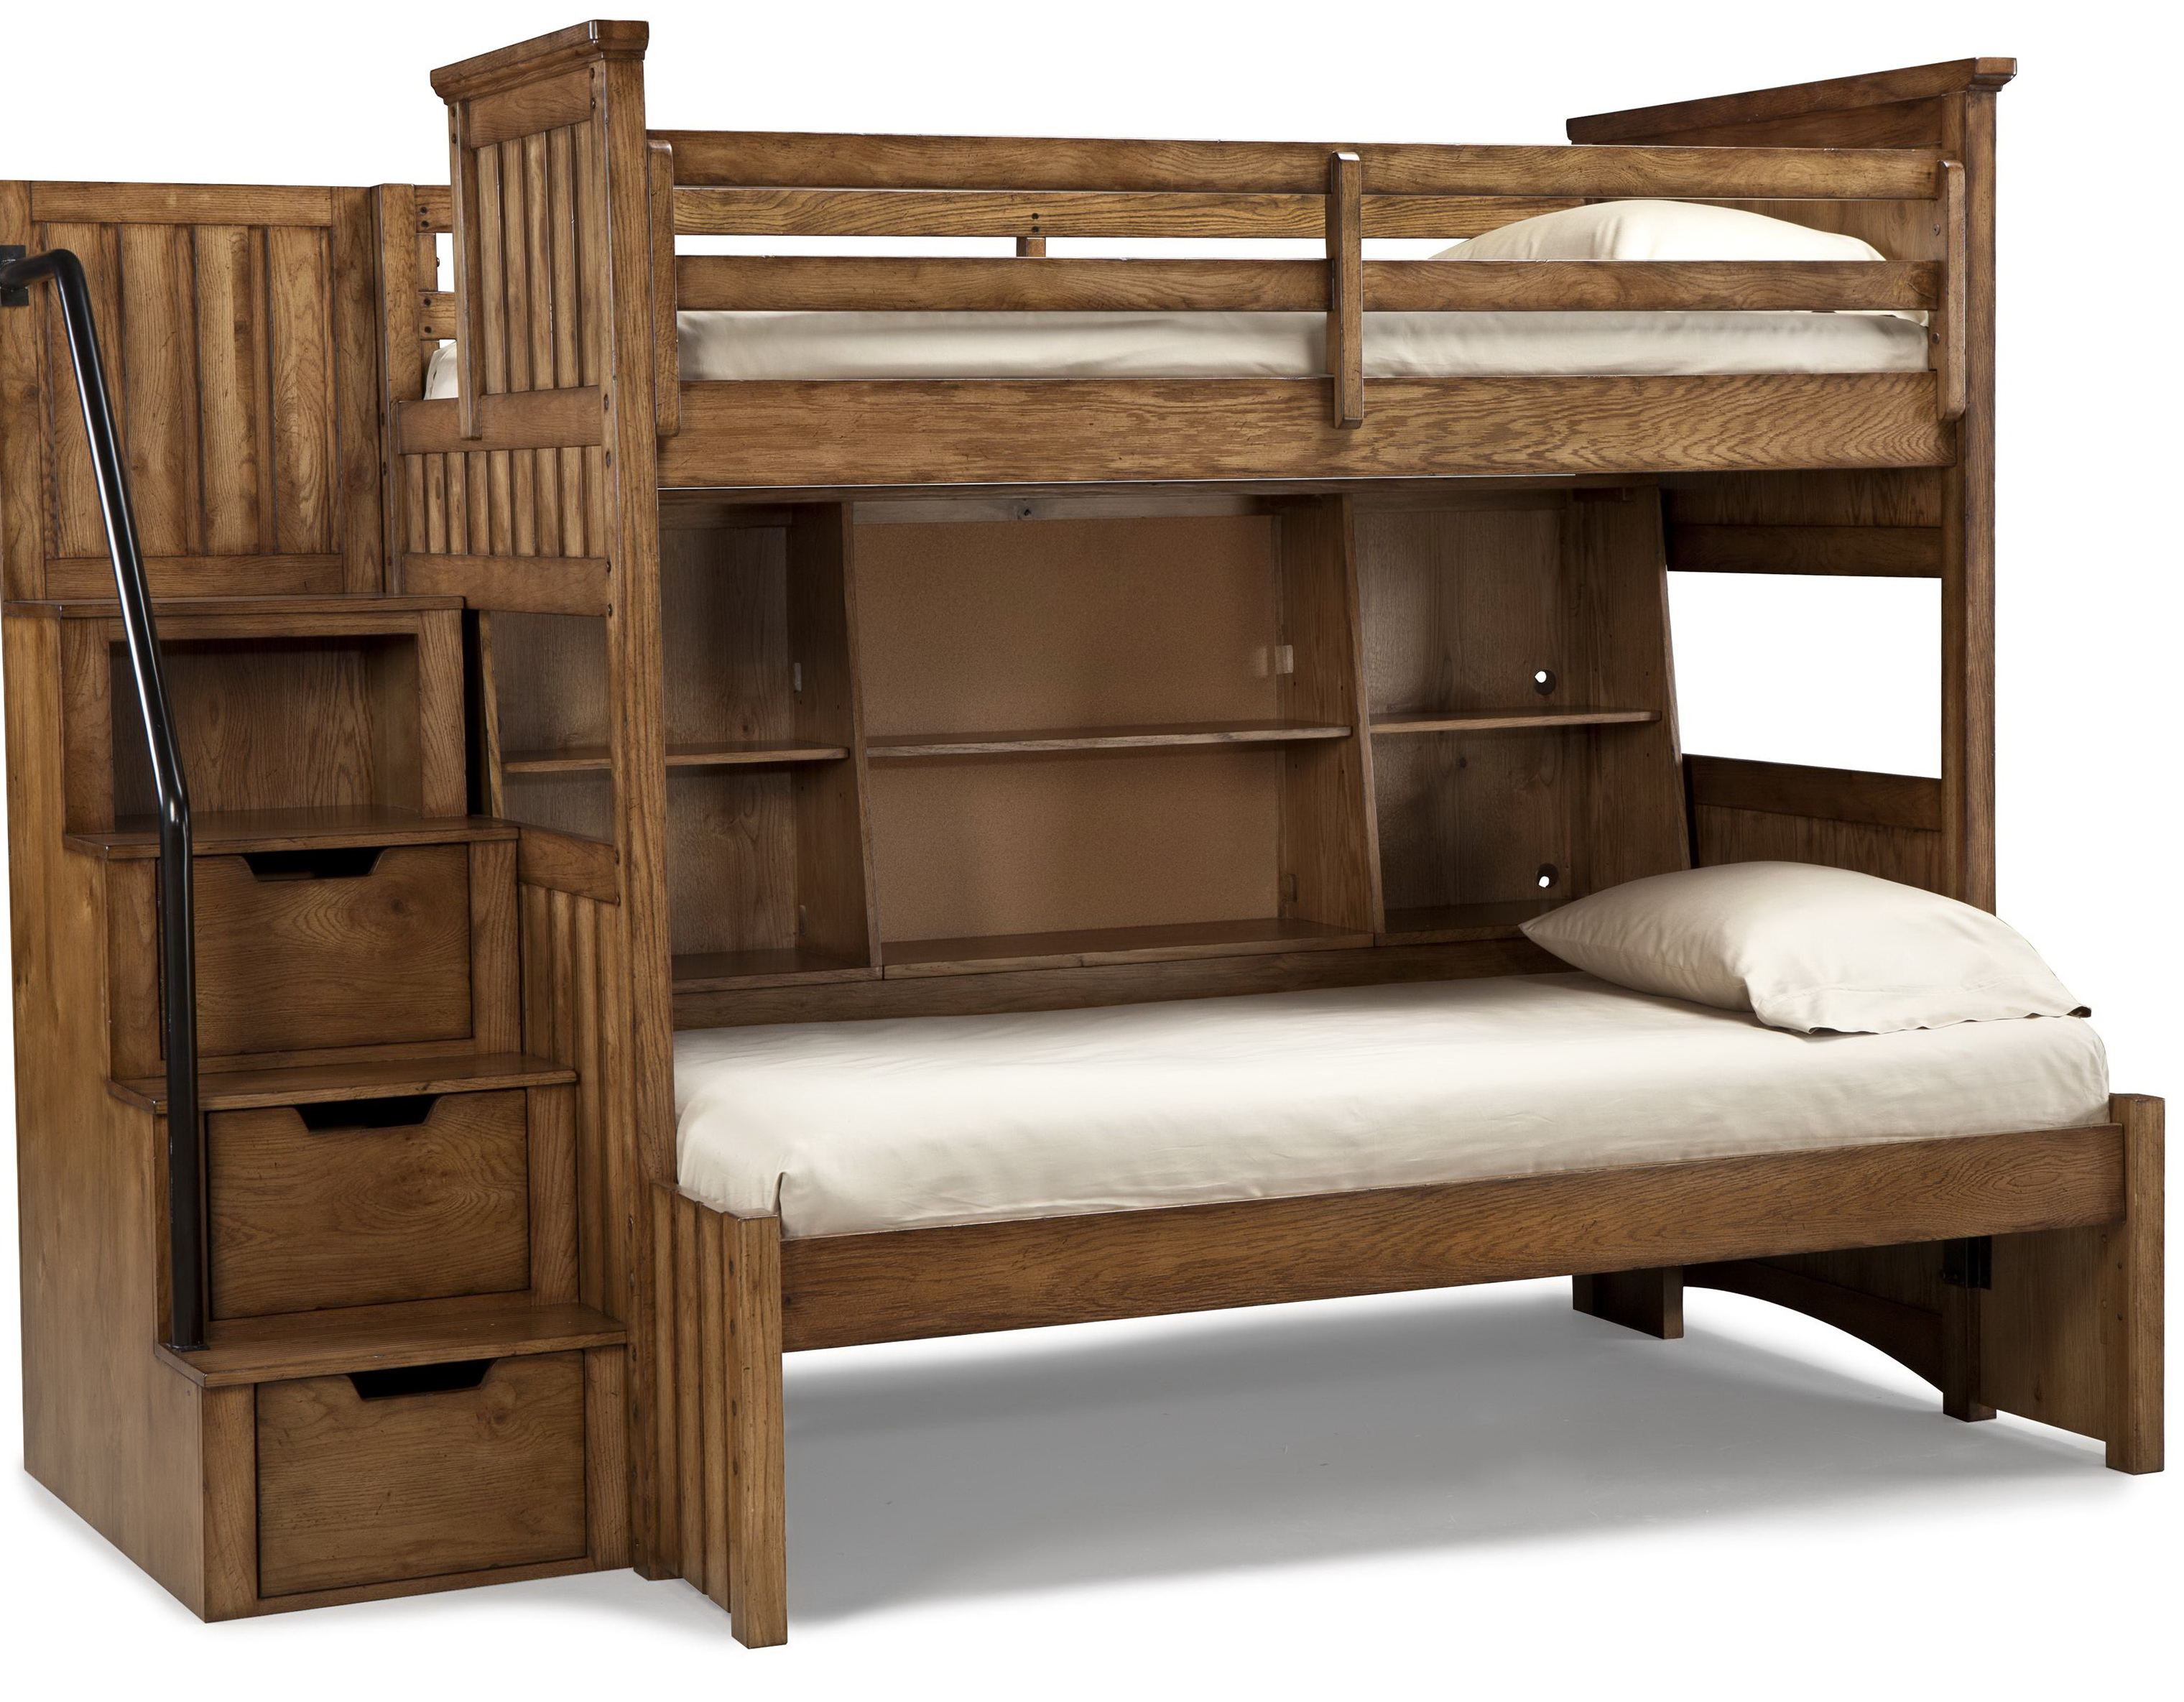 Built In Bunk Beds With Steps